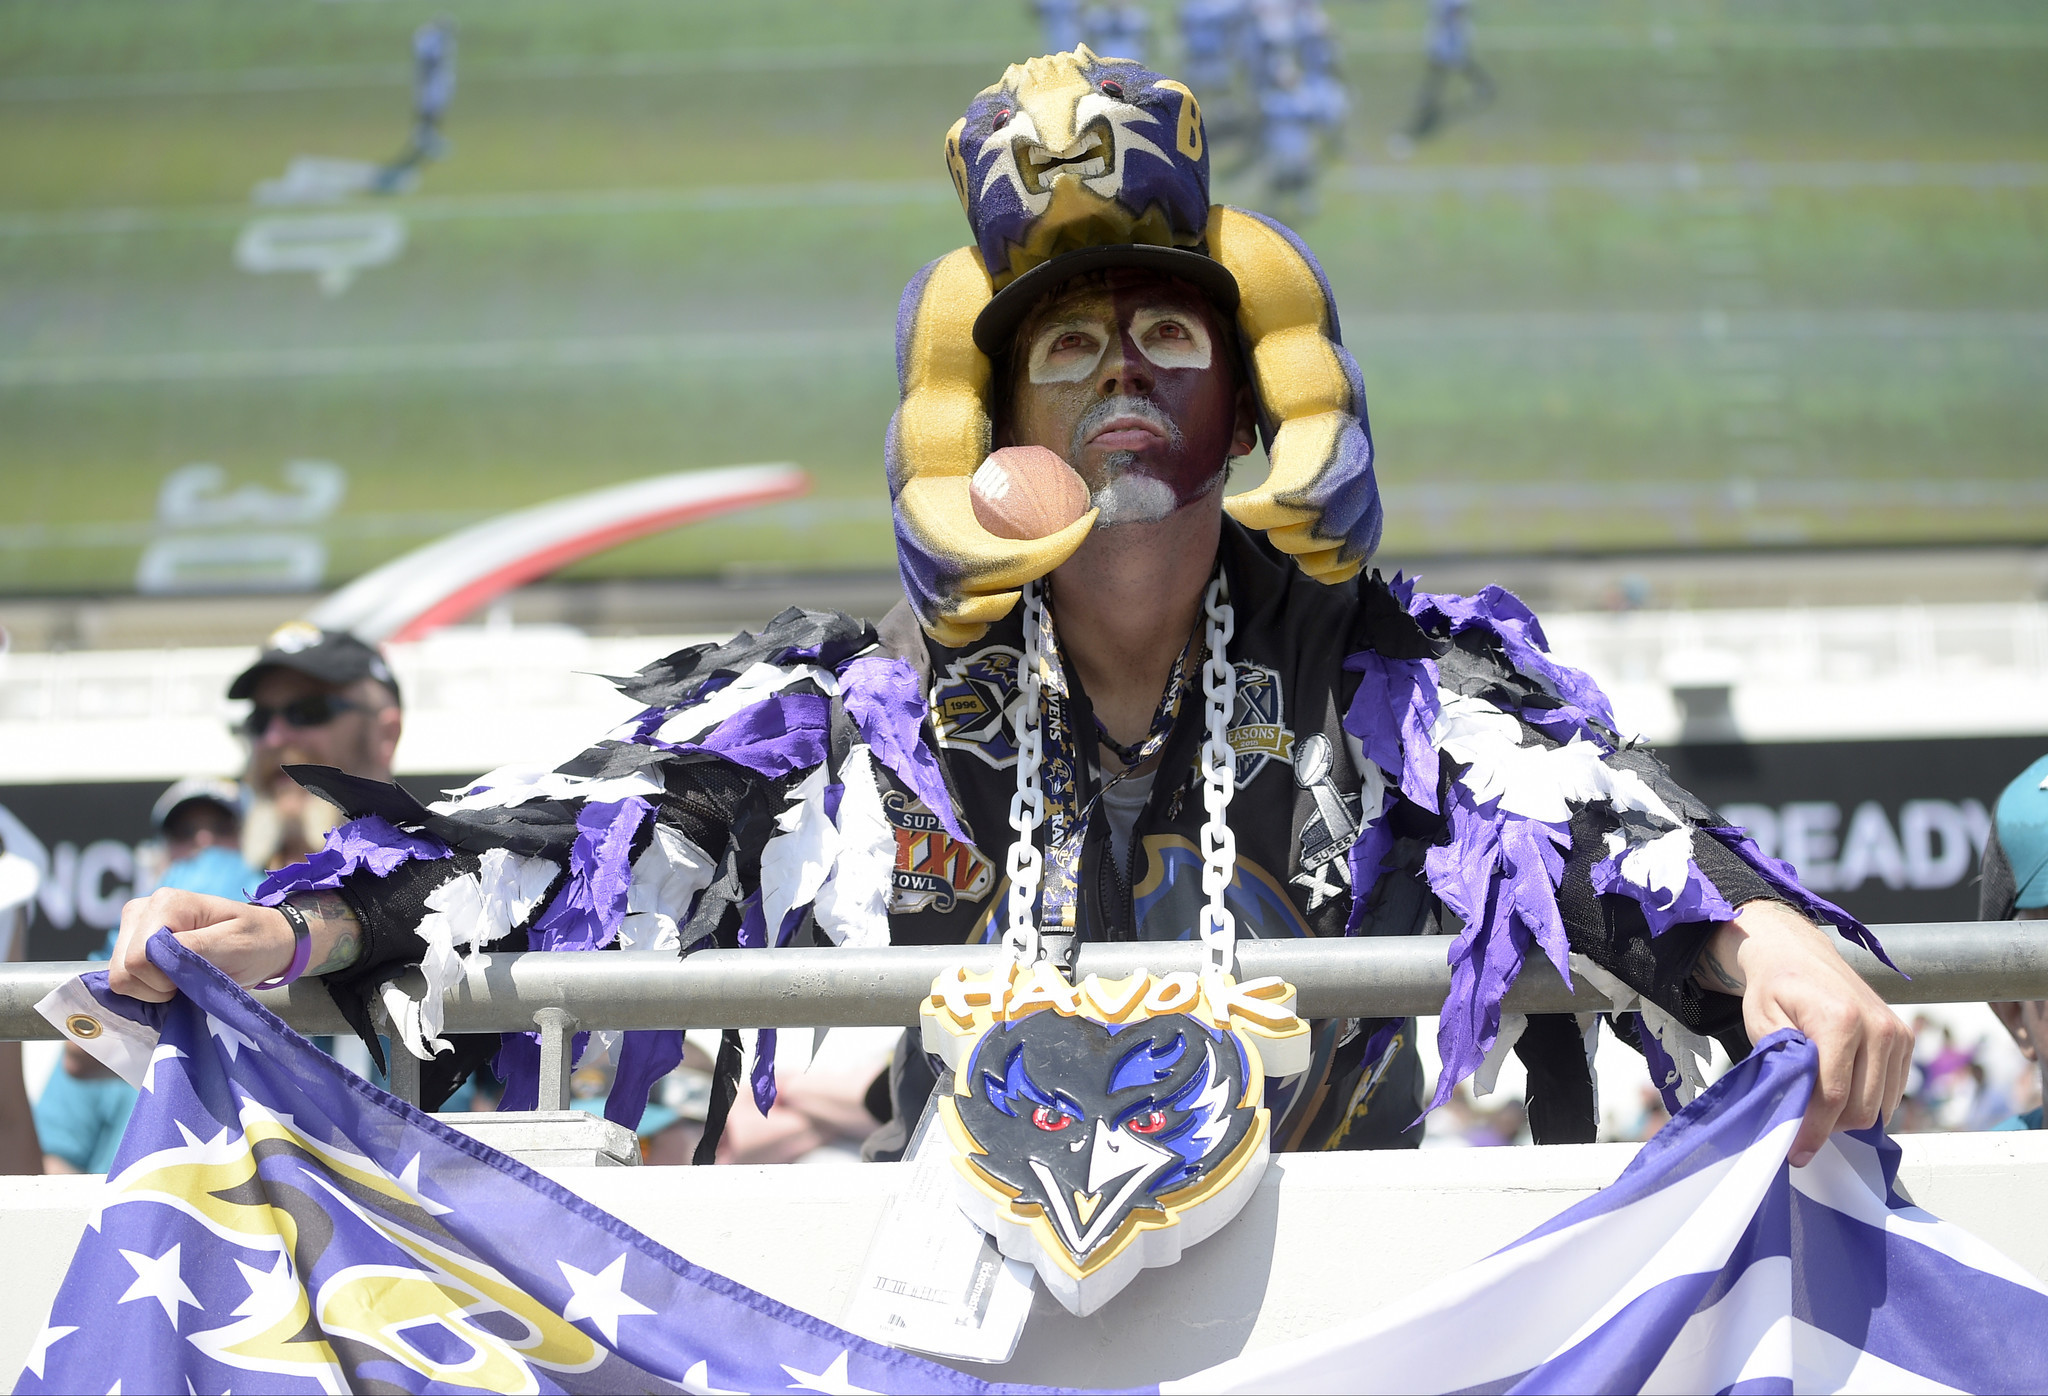 Bal-instant-analysis-sun-staff-reacts-to-ravens-jaguars-20160925